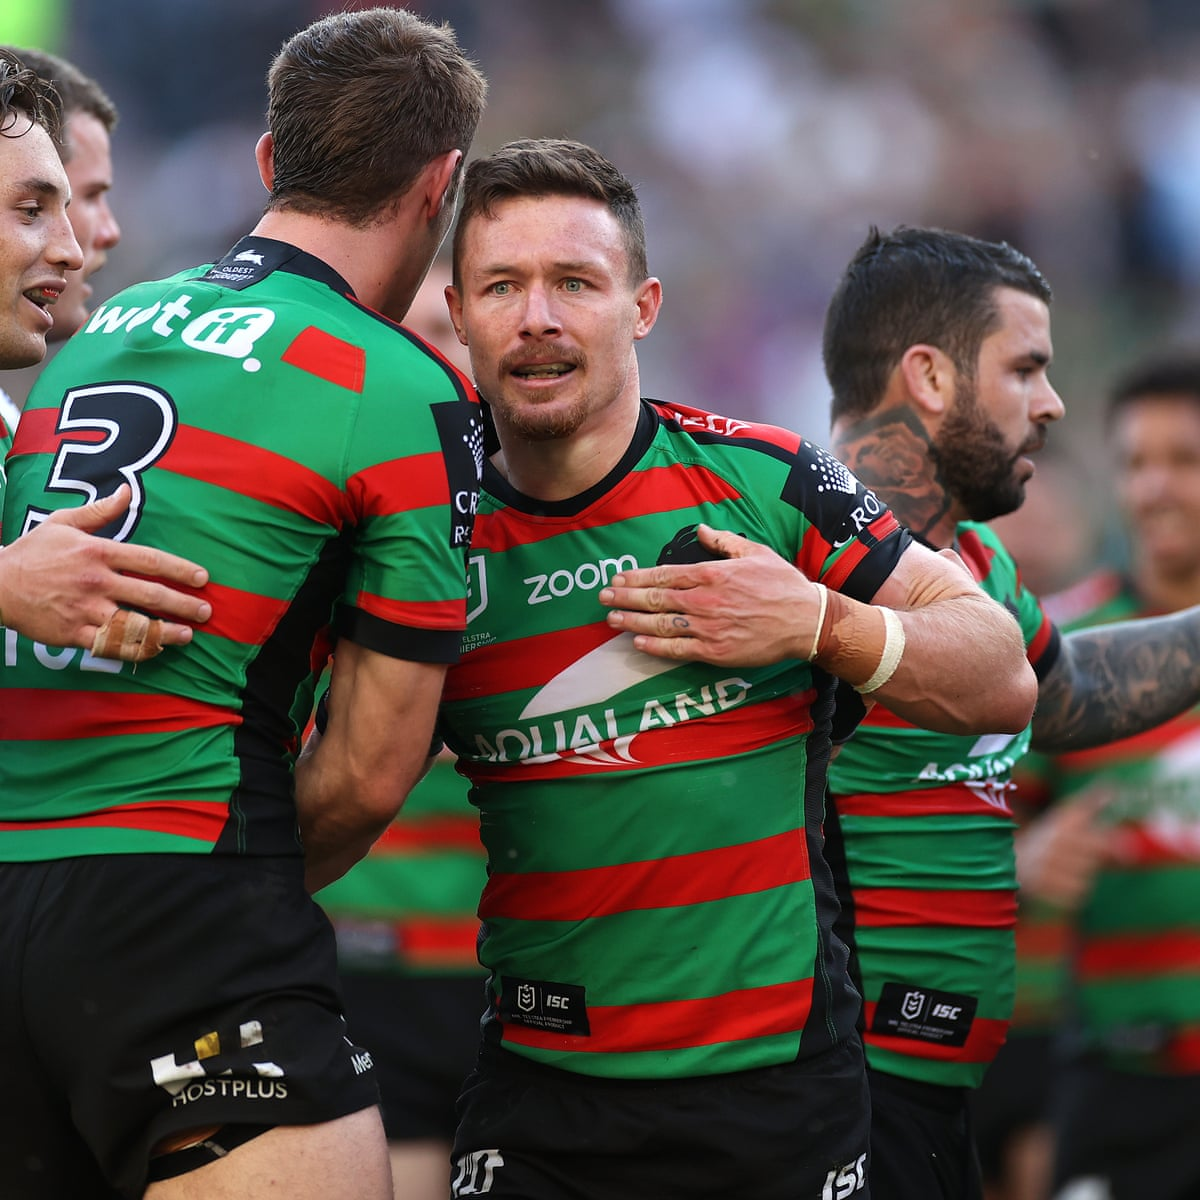 Nrl 2020 Finals Week One Rabbitohs Crush Knights As It Happened Sport The Guardian